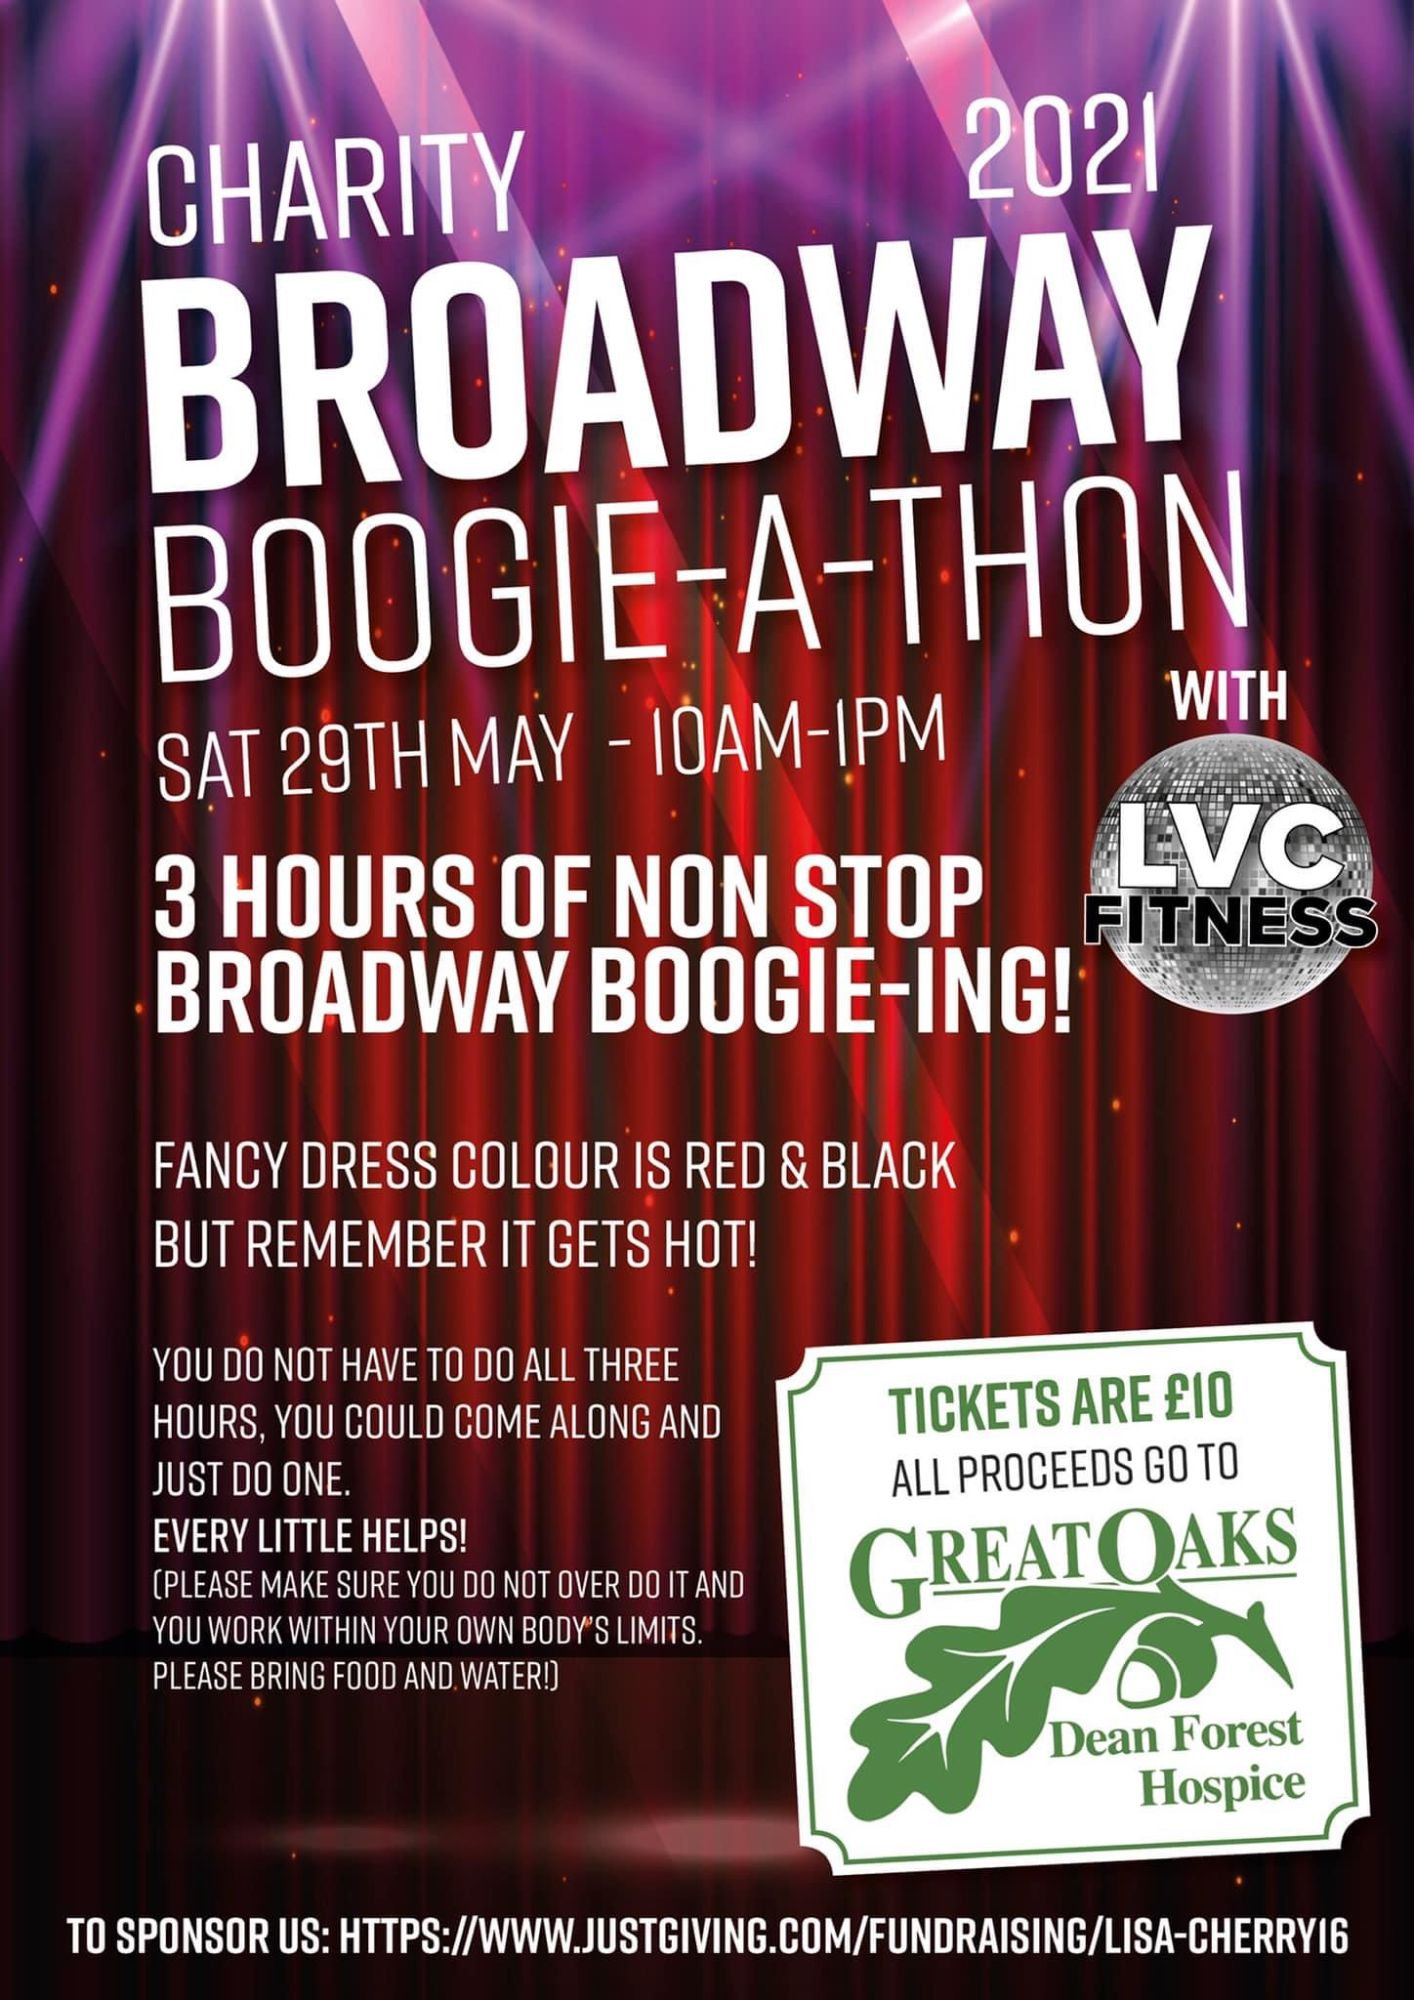 Broadway Boogie-A-Thon